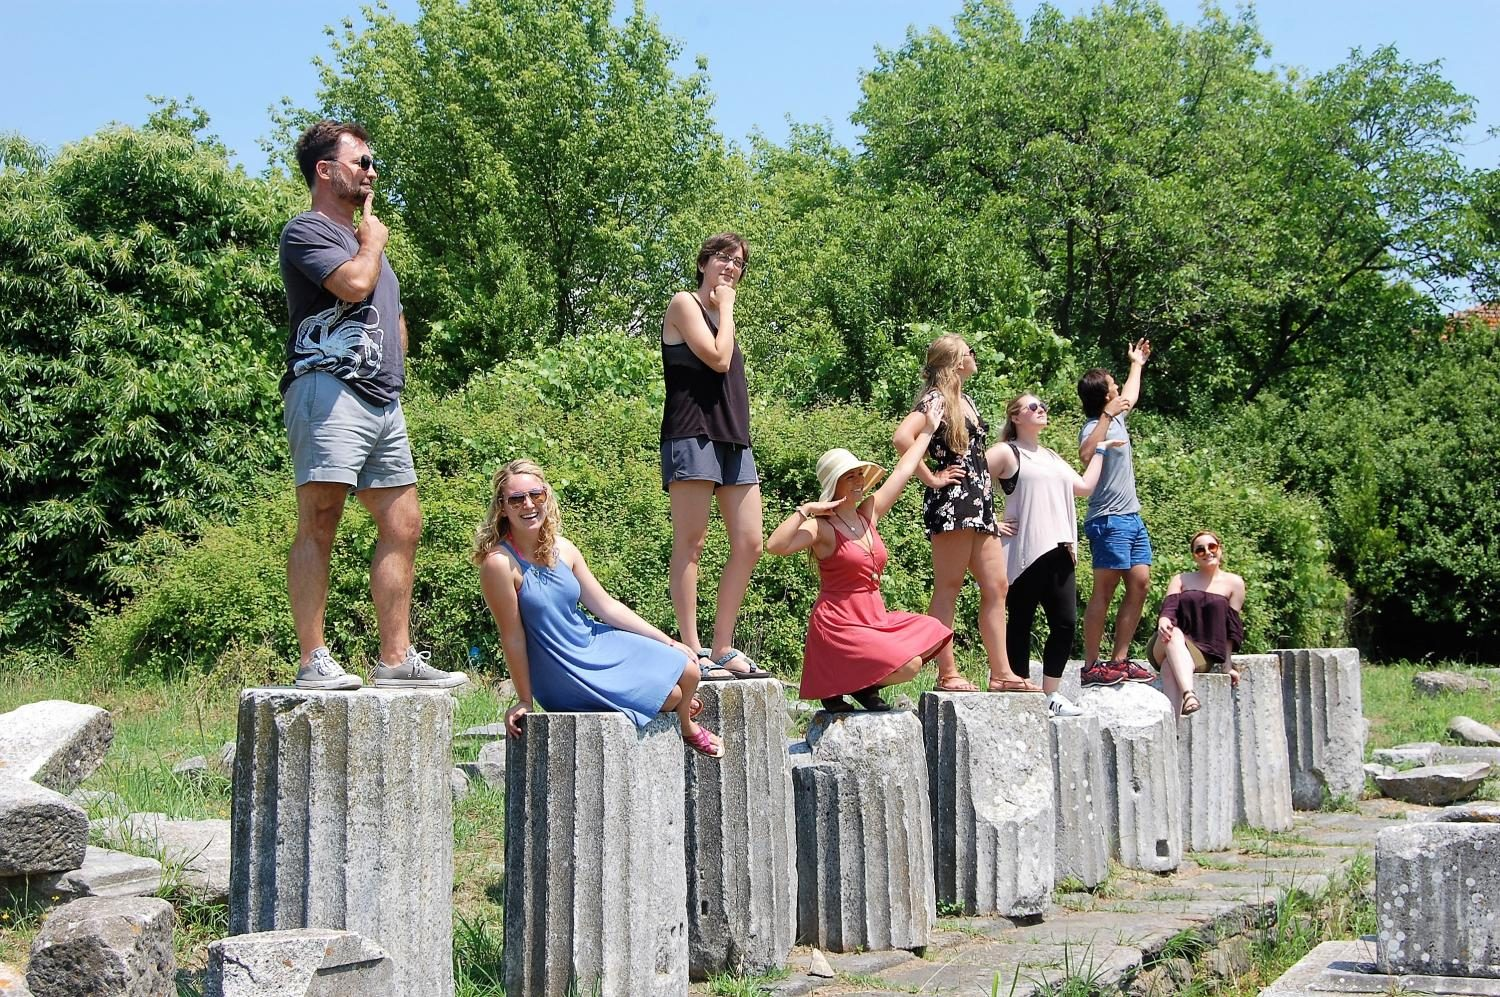 Students+pose+as+sculptures+in+the+Roman+Agora+at+Limenas+in+Thasos%2C+Greece.